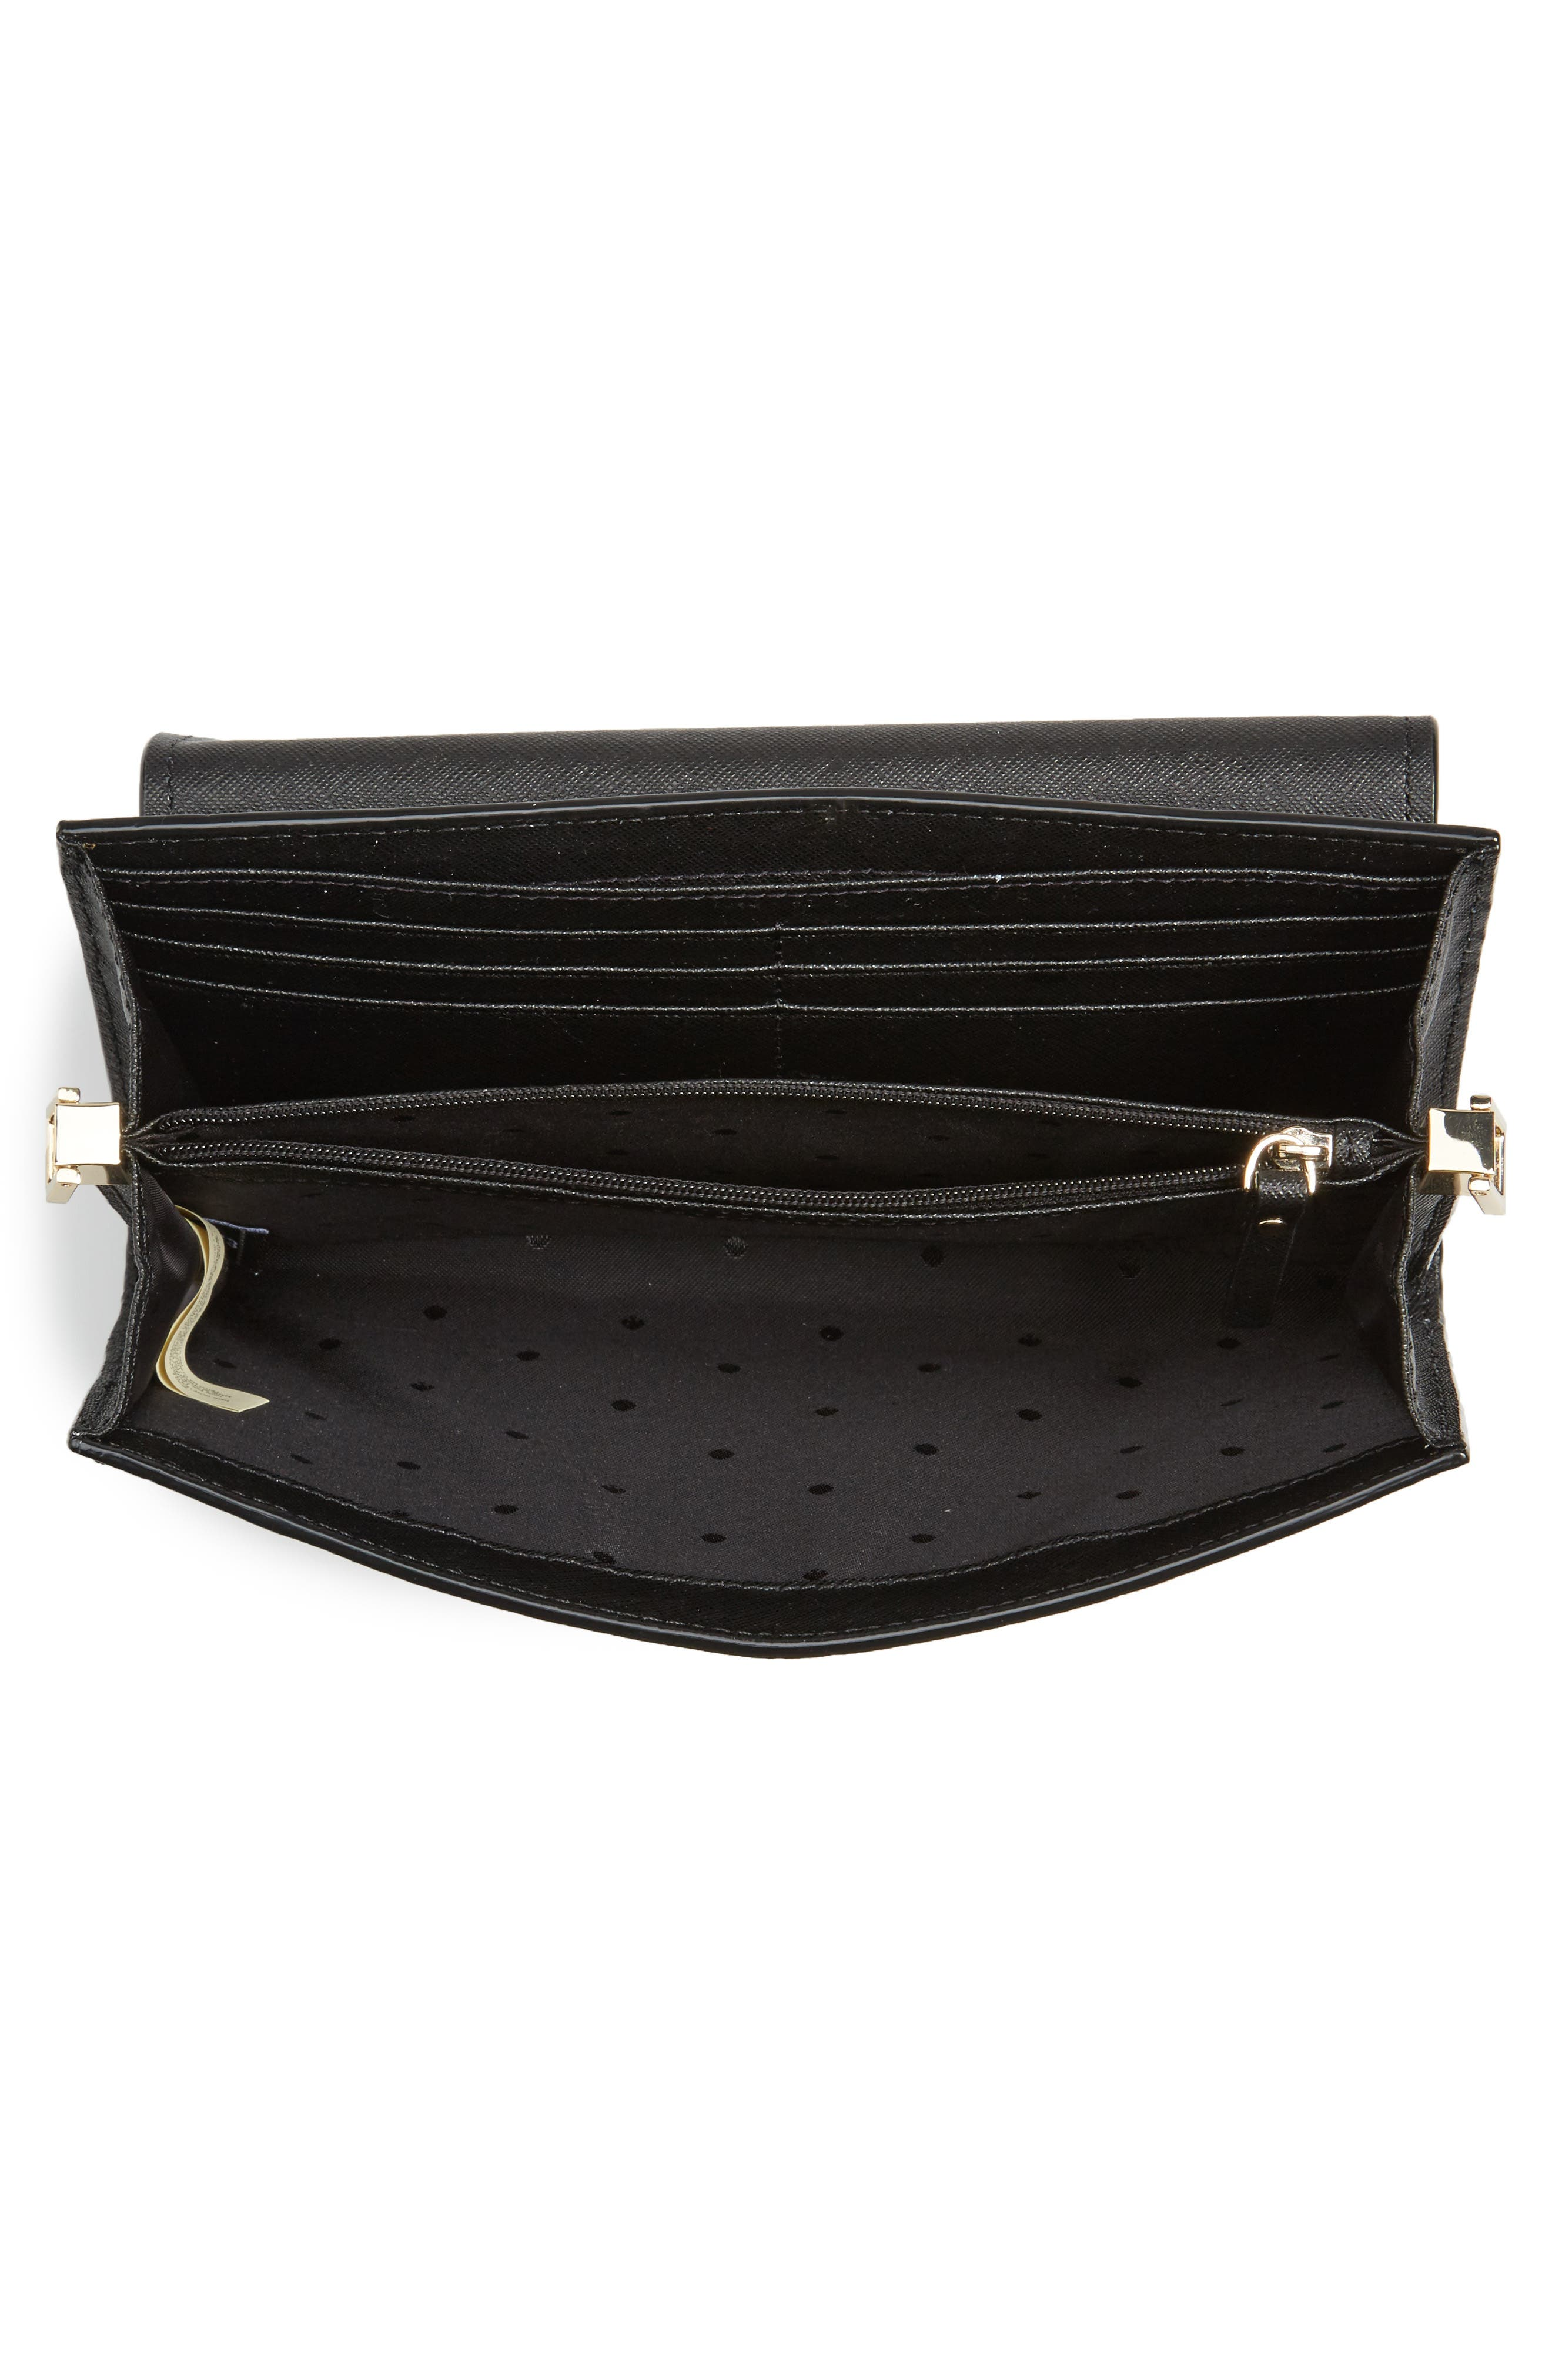 make it mine - camila leather clutch,                             Alternate thumbnail 7, color,